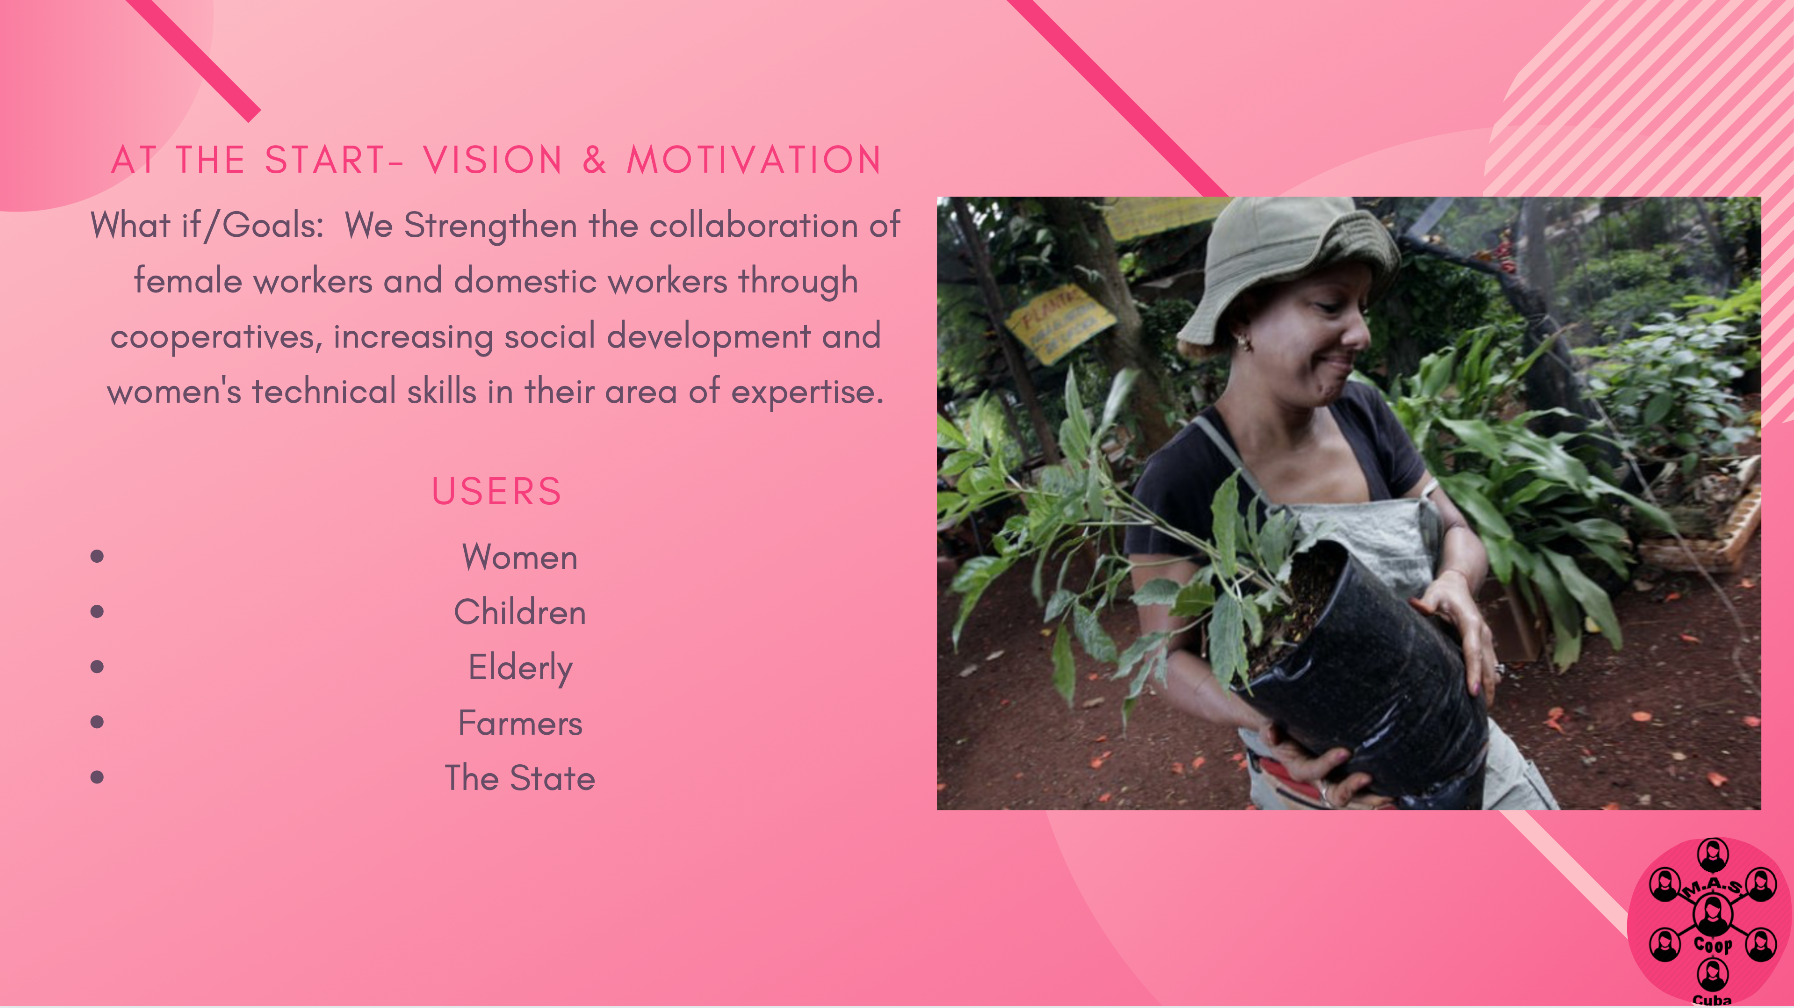 The vision for this Coop is to strengthen female participation in their workforce.